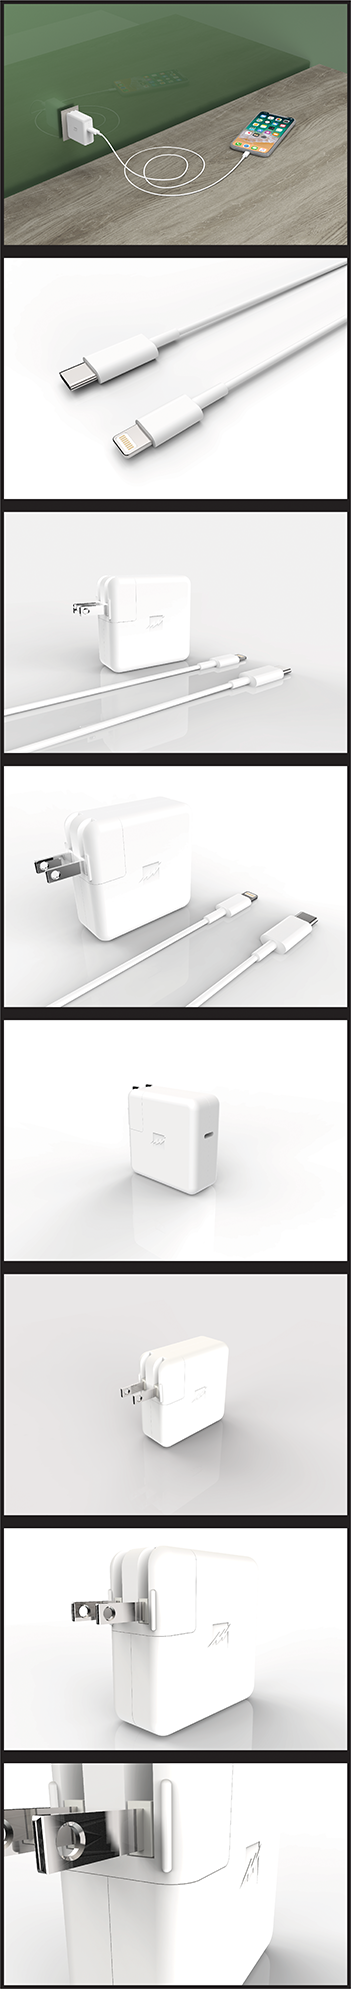 3d Renderings - Charger